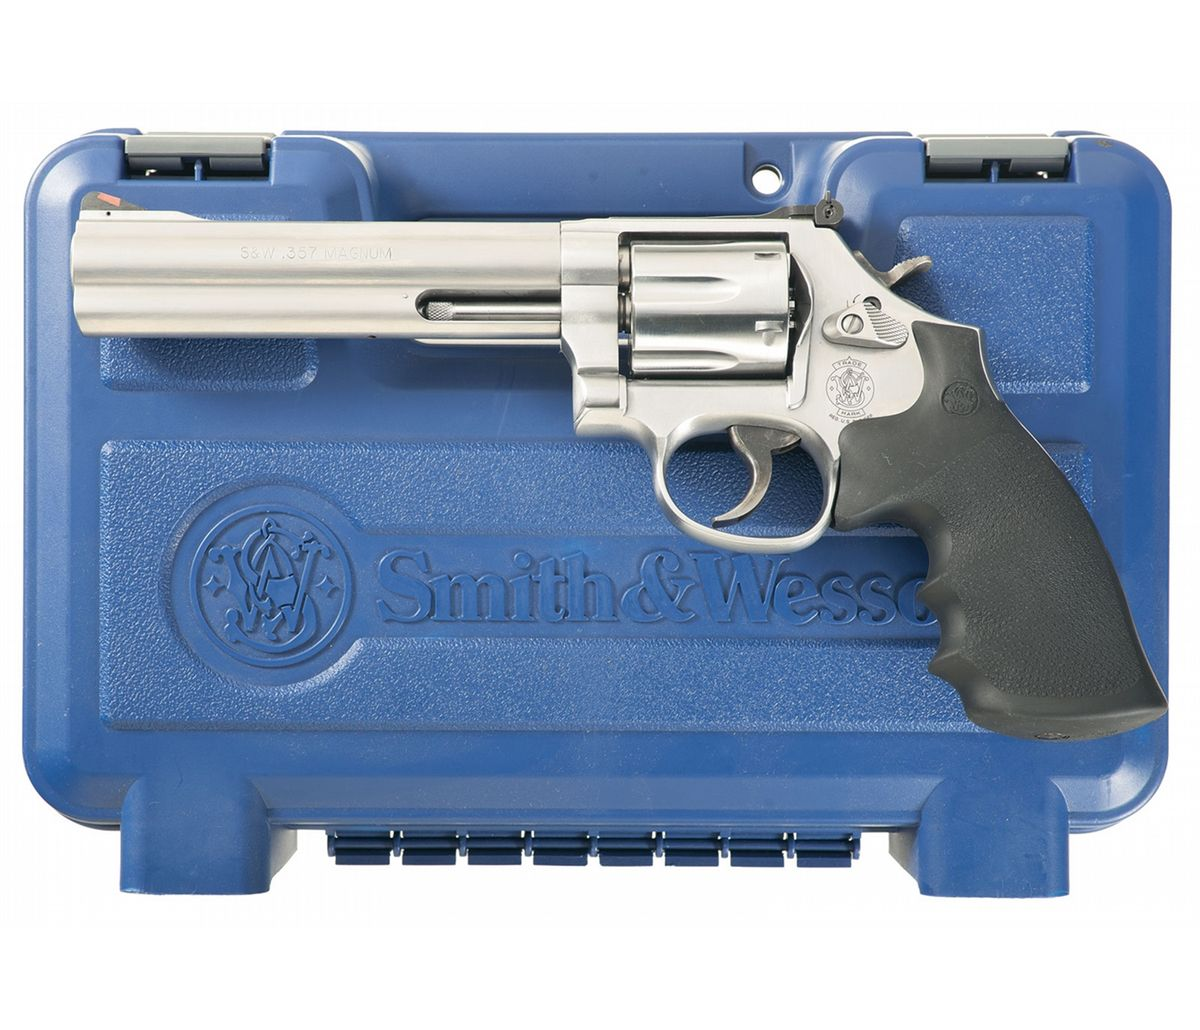 Smith og Wesson 686 serienummer dating den dating Lab Holdings Pty Ltd